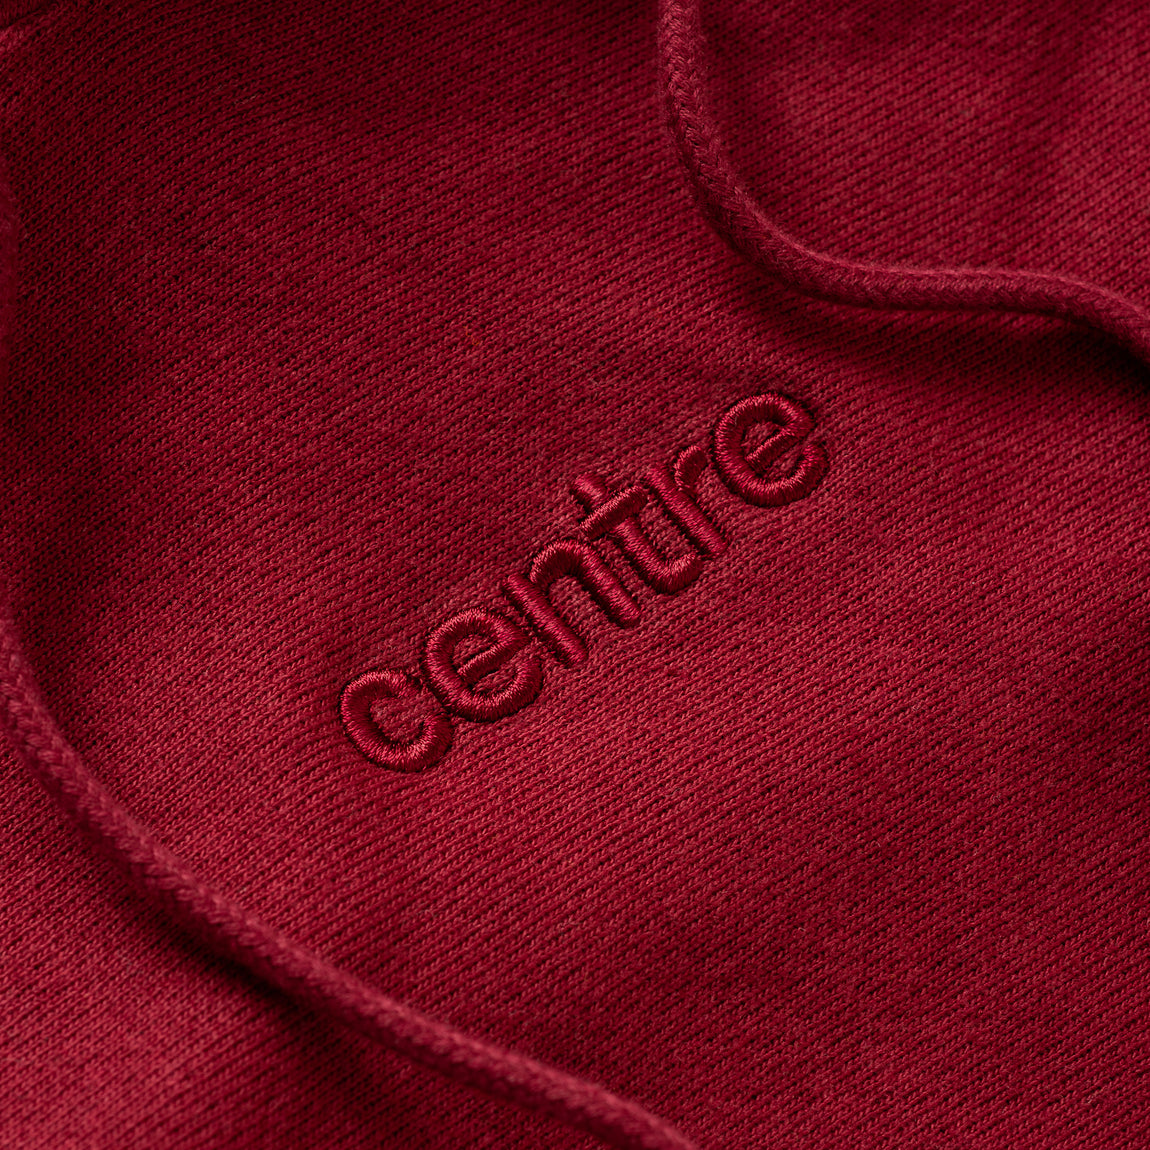 Centre Heavyweights Tonal Fleece Hoodie (Cardinal) - Centre Heavyweights Tonal Fleece Hoodie (Cardinal) -